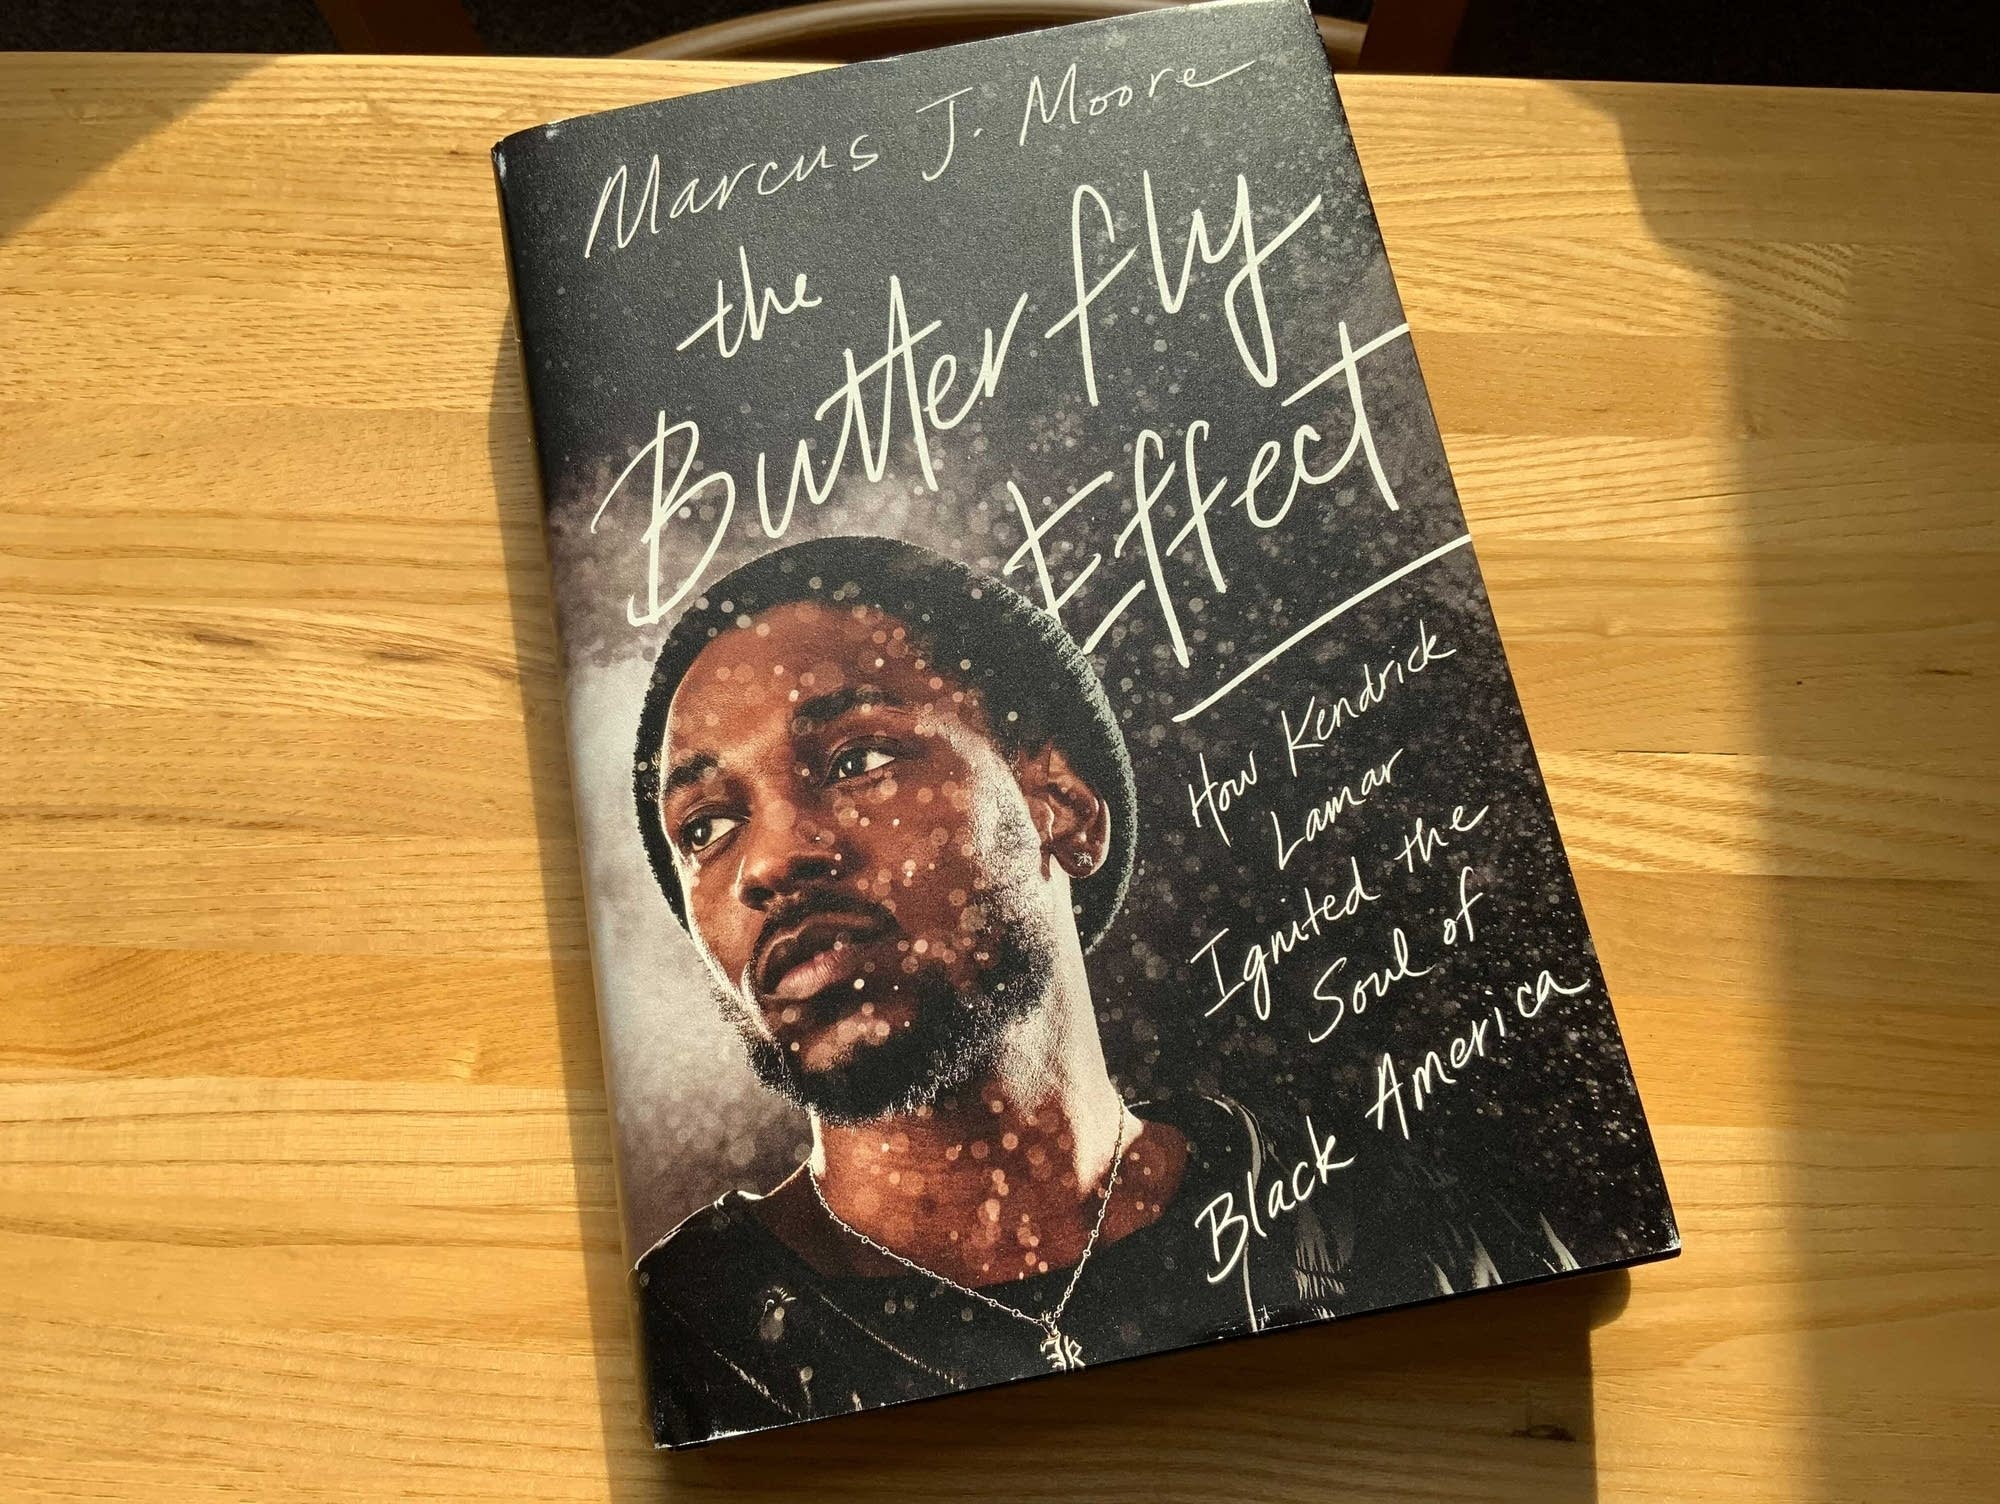 Marcus J. Moore's 'The Butterfly Effect.'